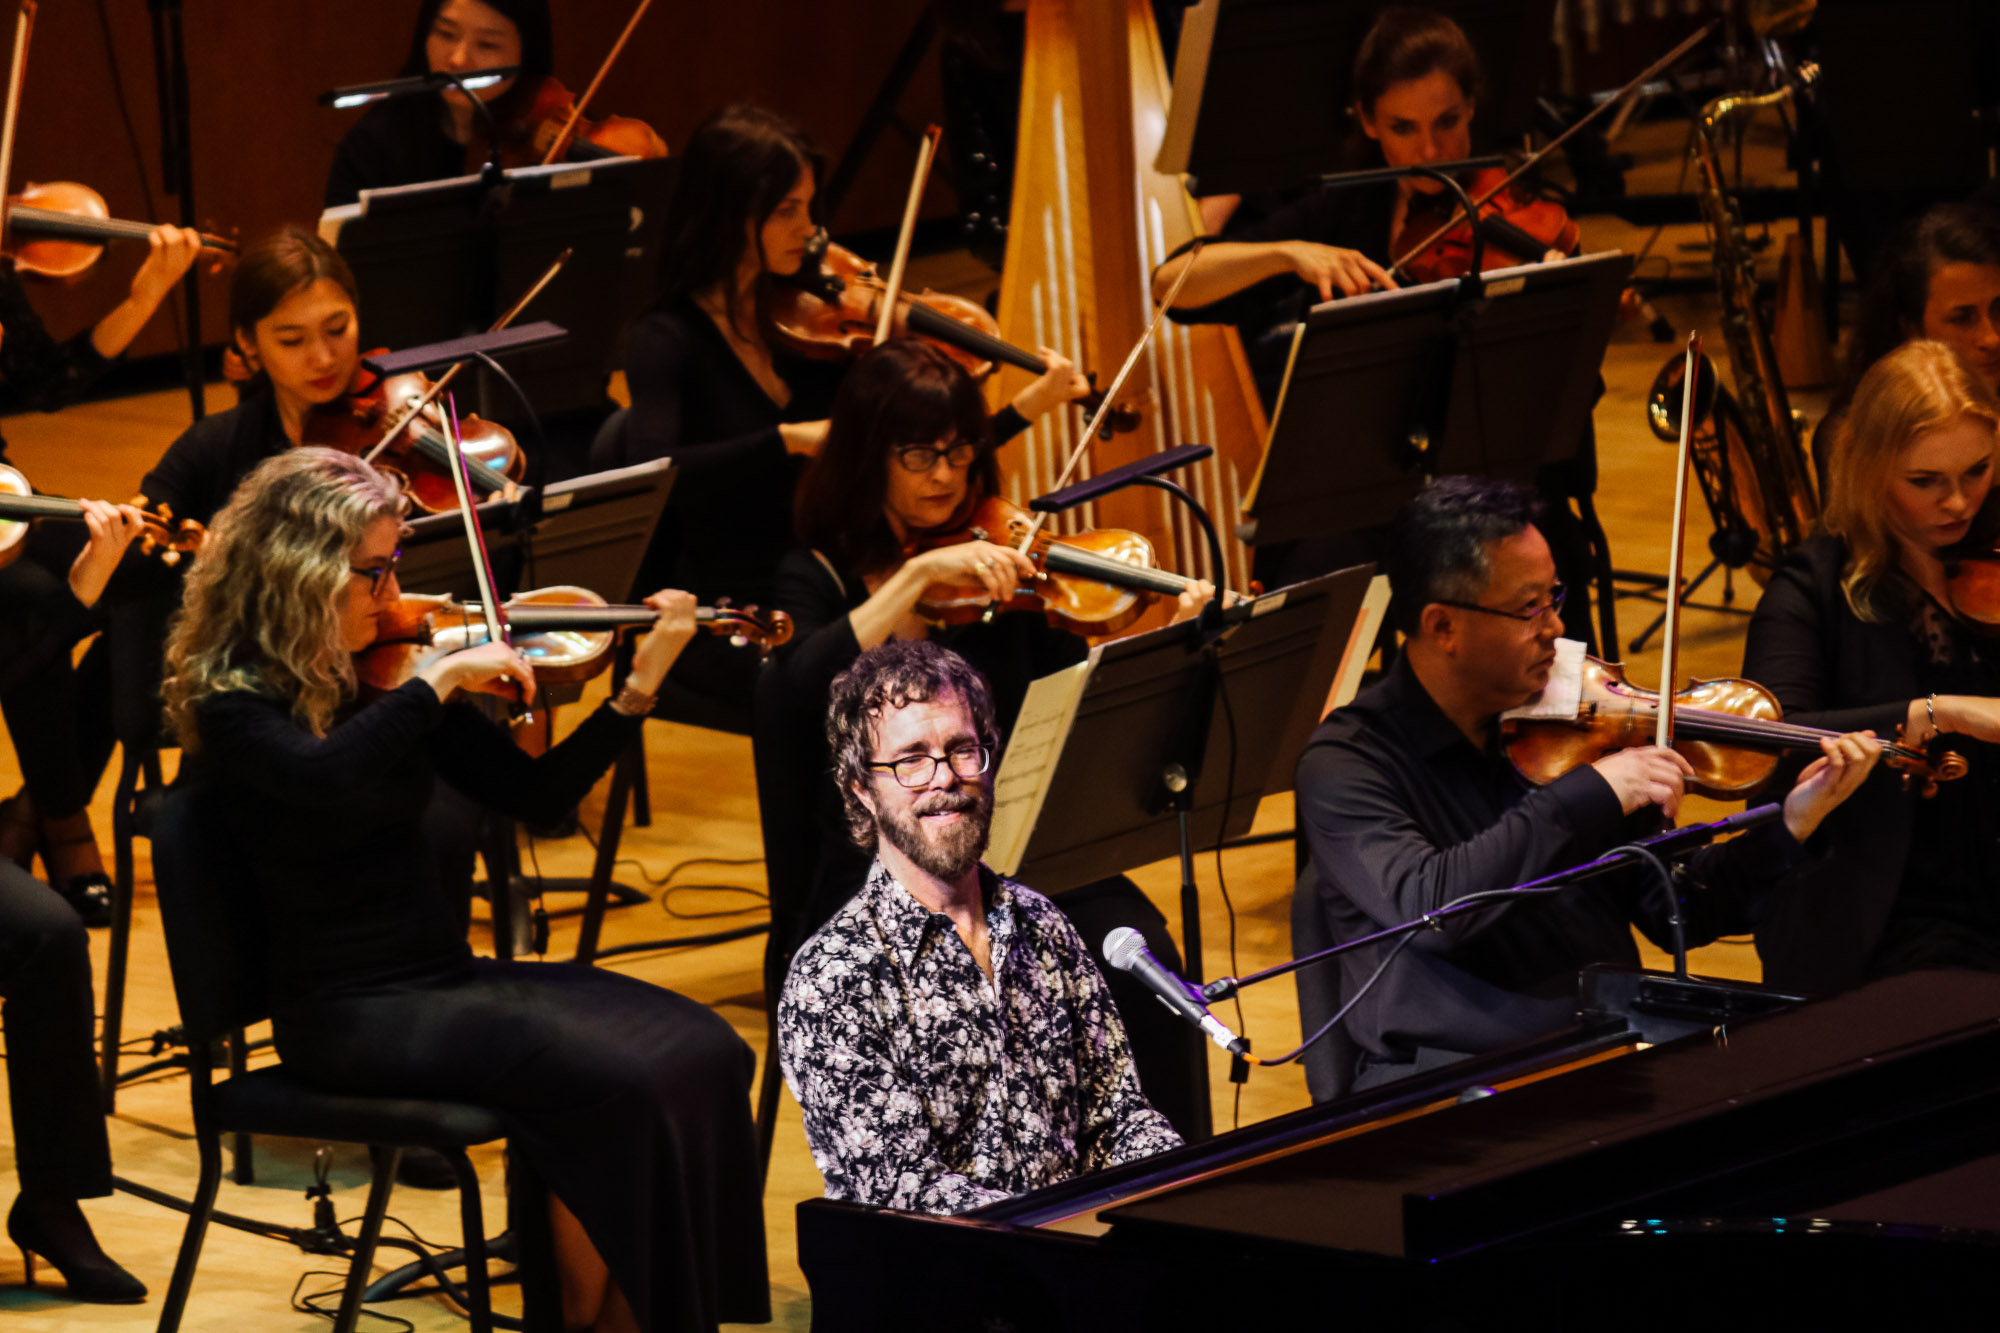 2Ben Folds Grace Kelly Atlanta Bullet Music.jpg